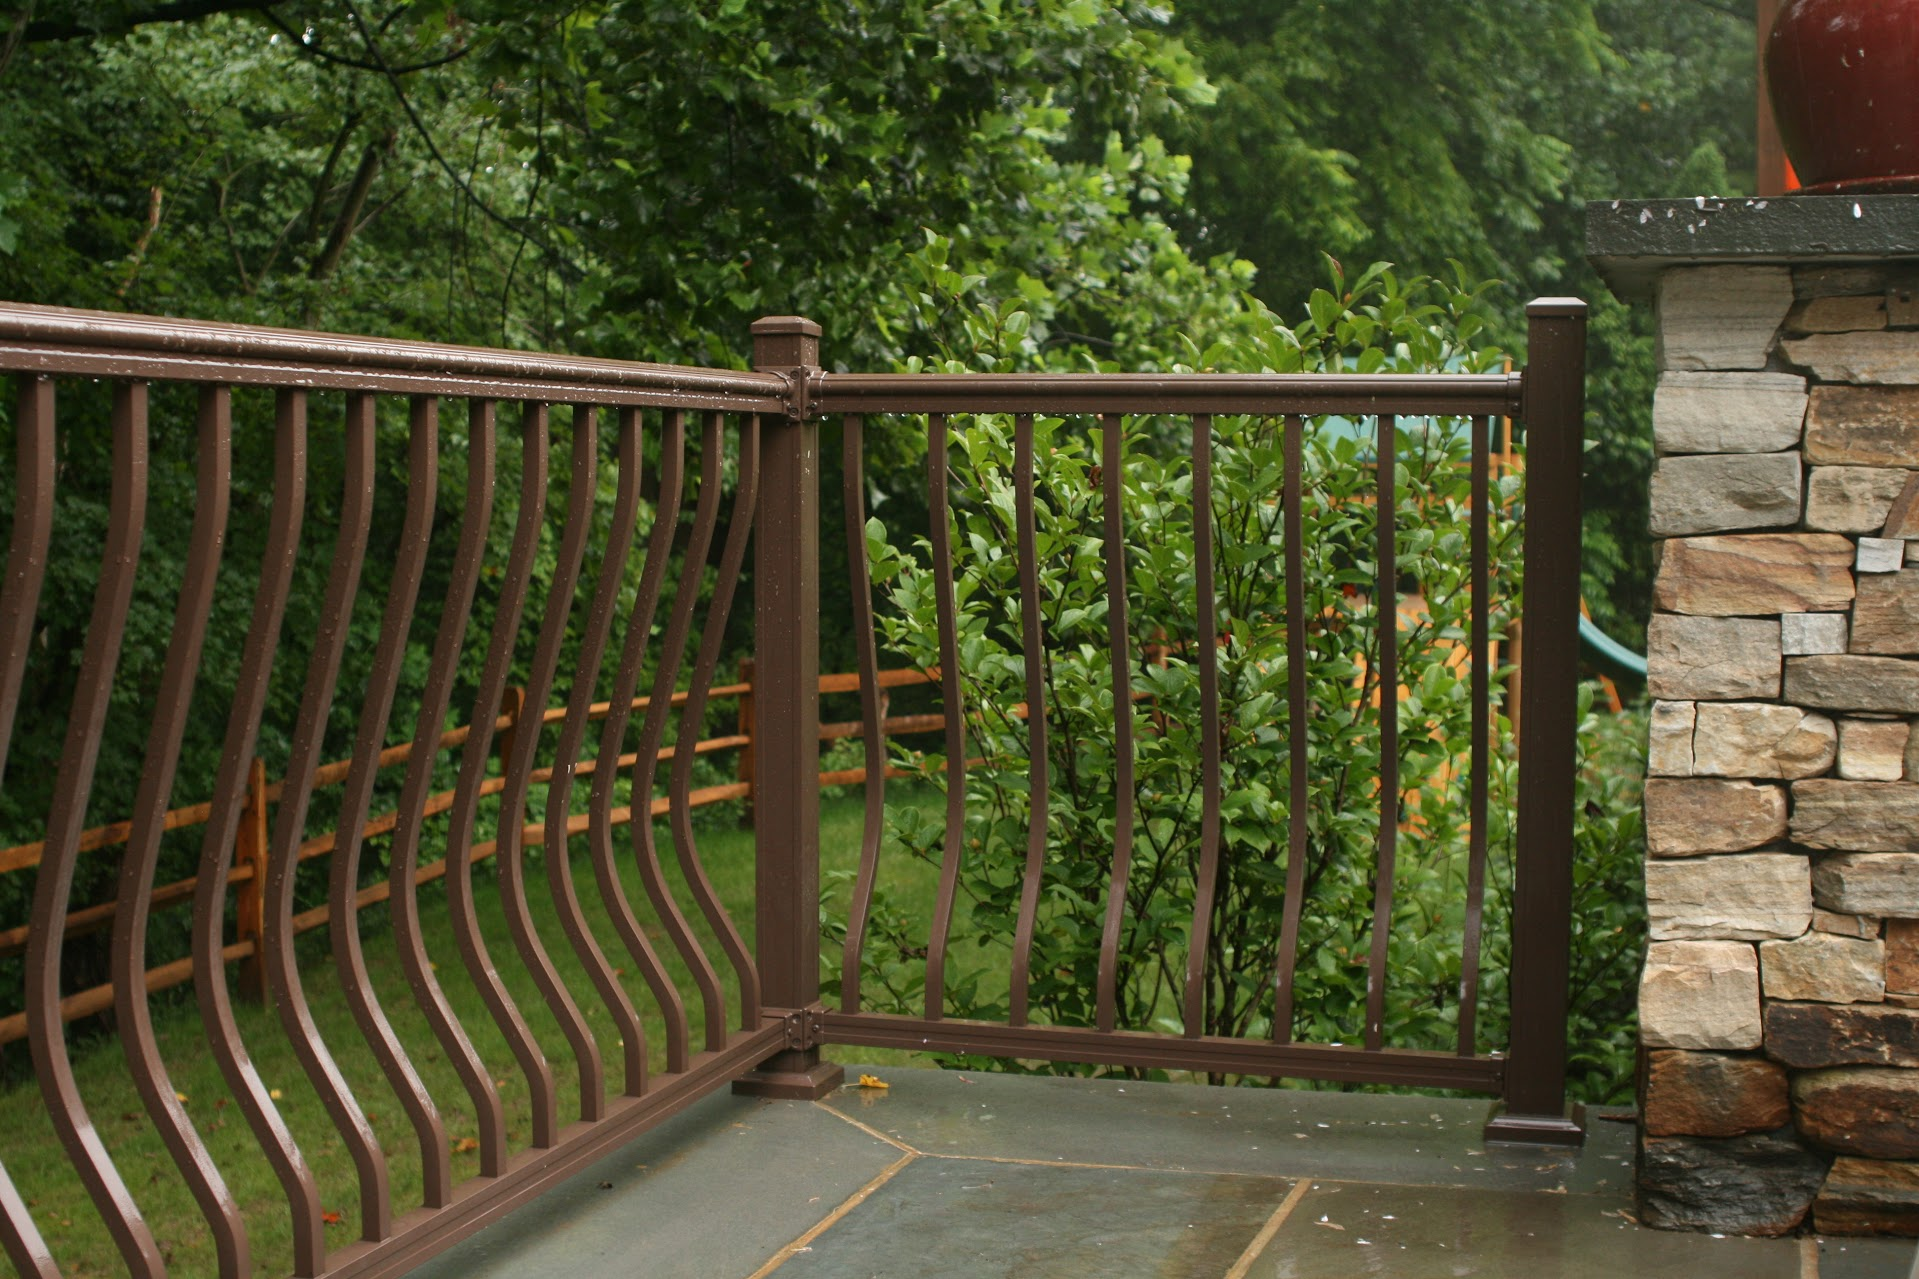 bronze railing on stone patio